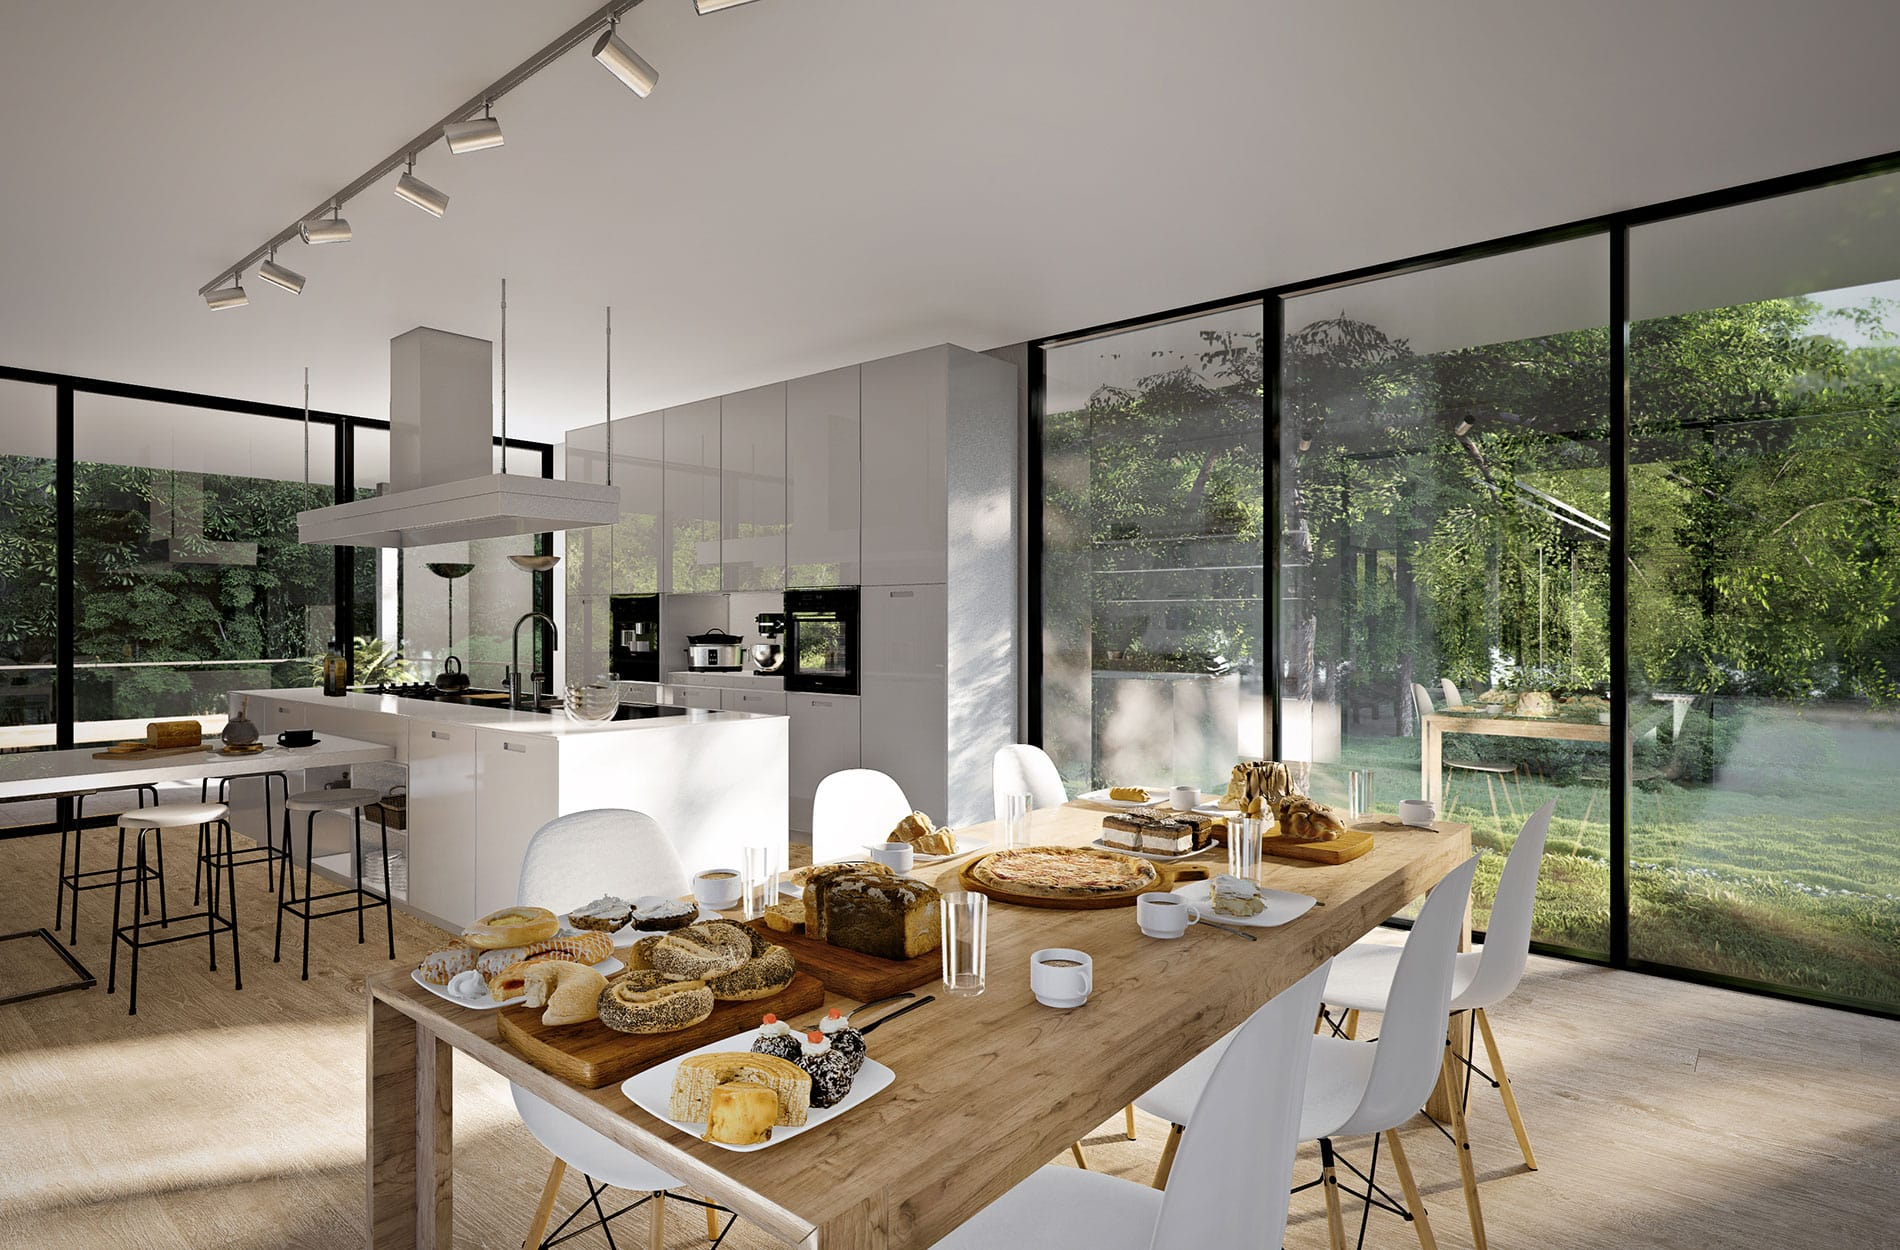 Photo realistic kitchen interior 3D visualisation